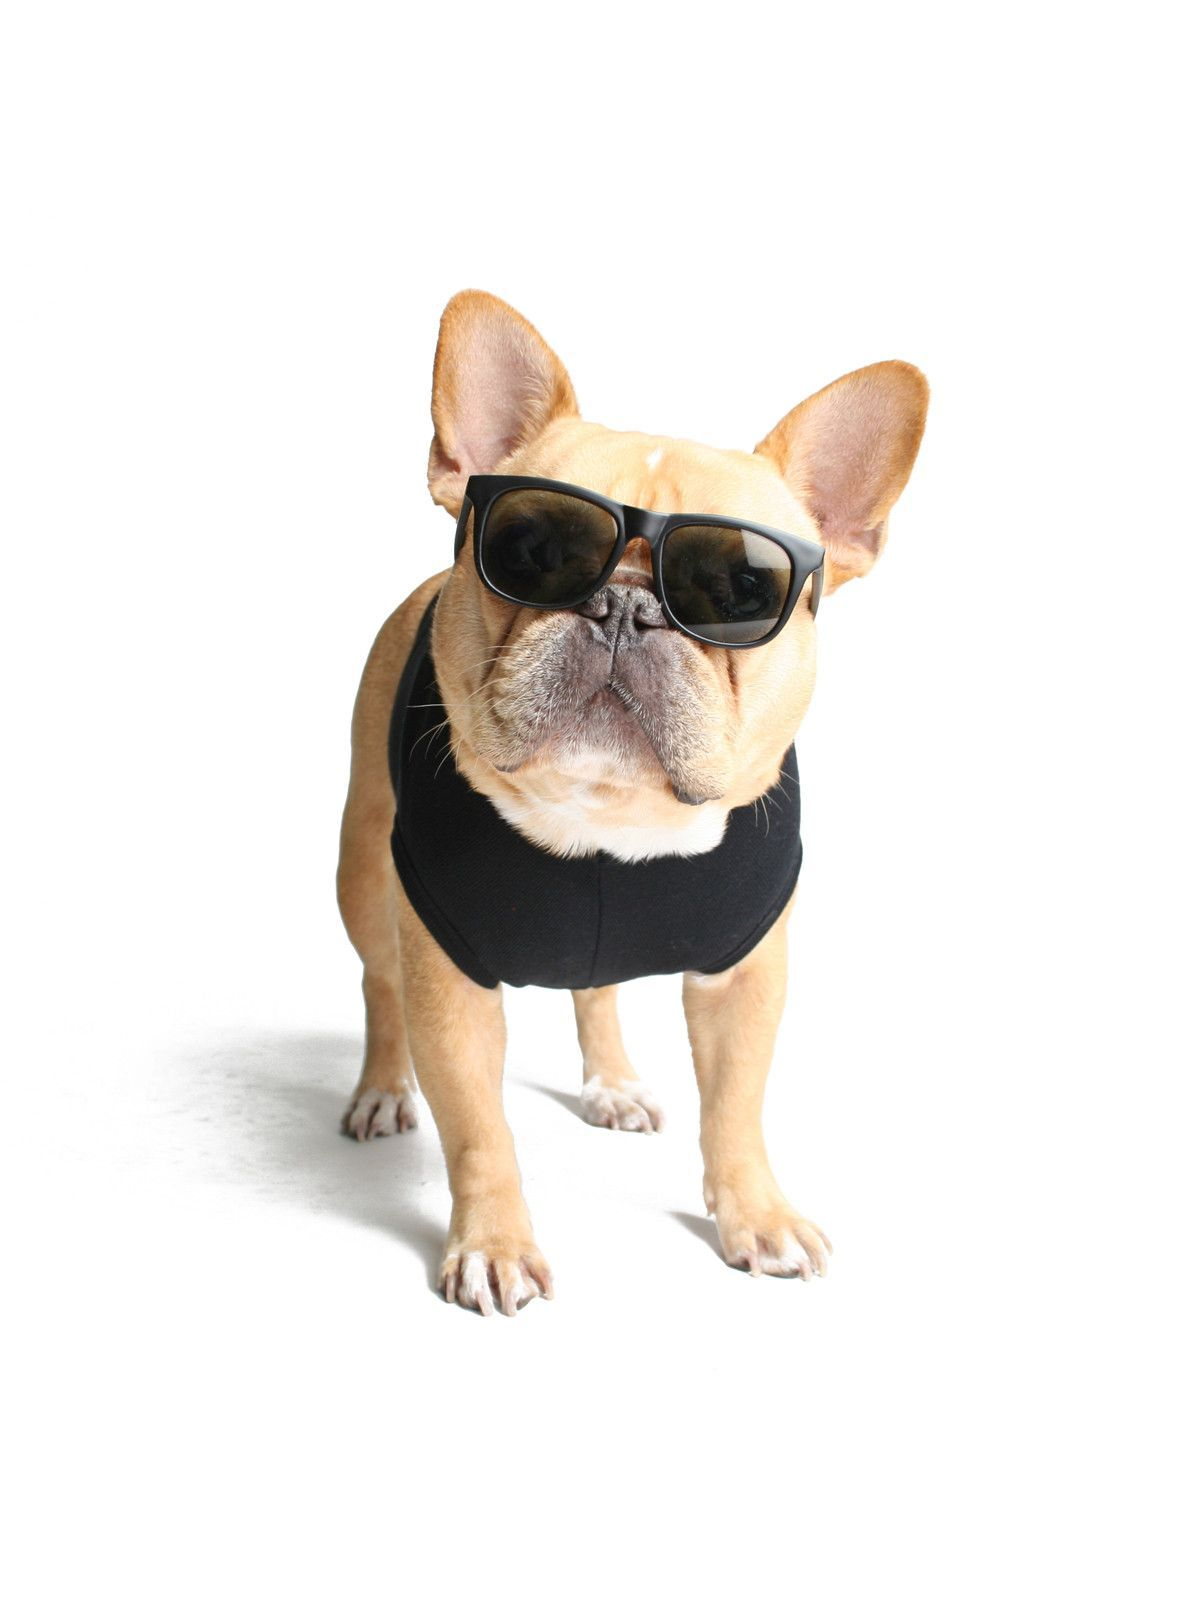 8e743e8568d Risky Business · Dog Wear · IT DOESN T GET ANY BETTER THAN THIS. FINALLY A  PAIR OF SUNGLASSES THAT